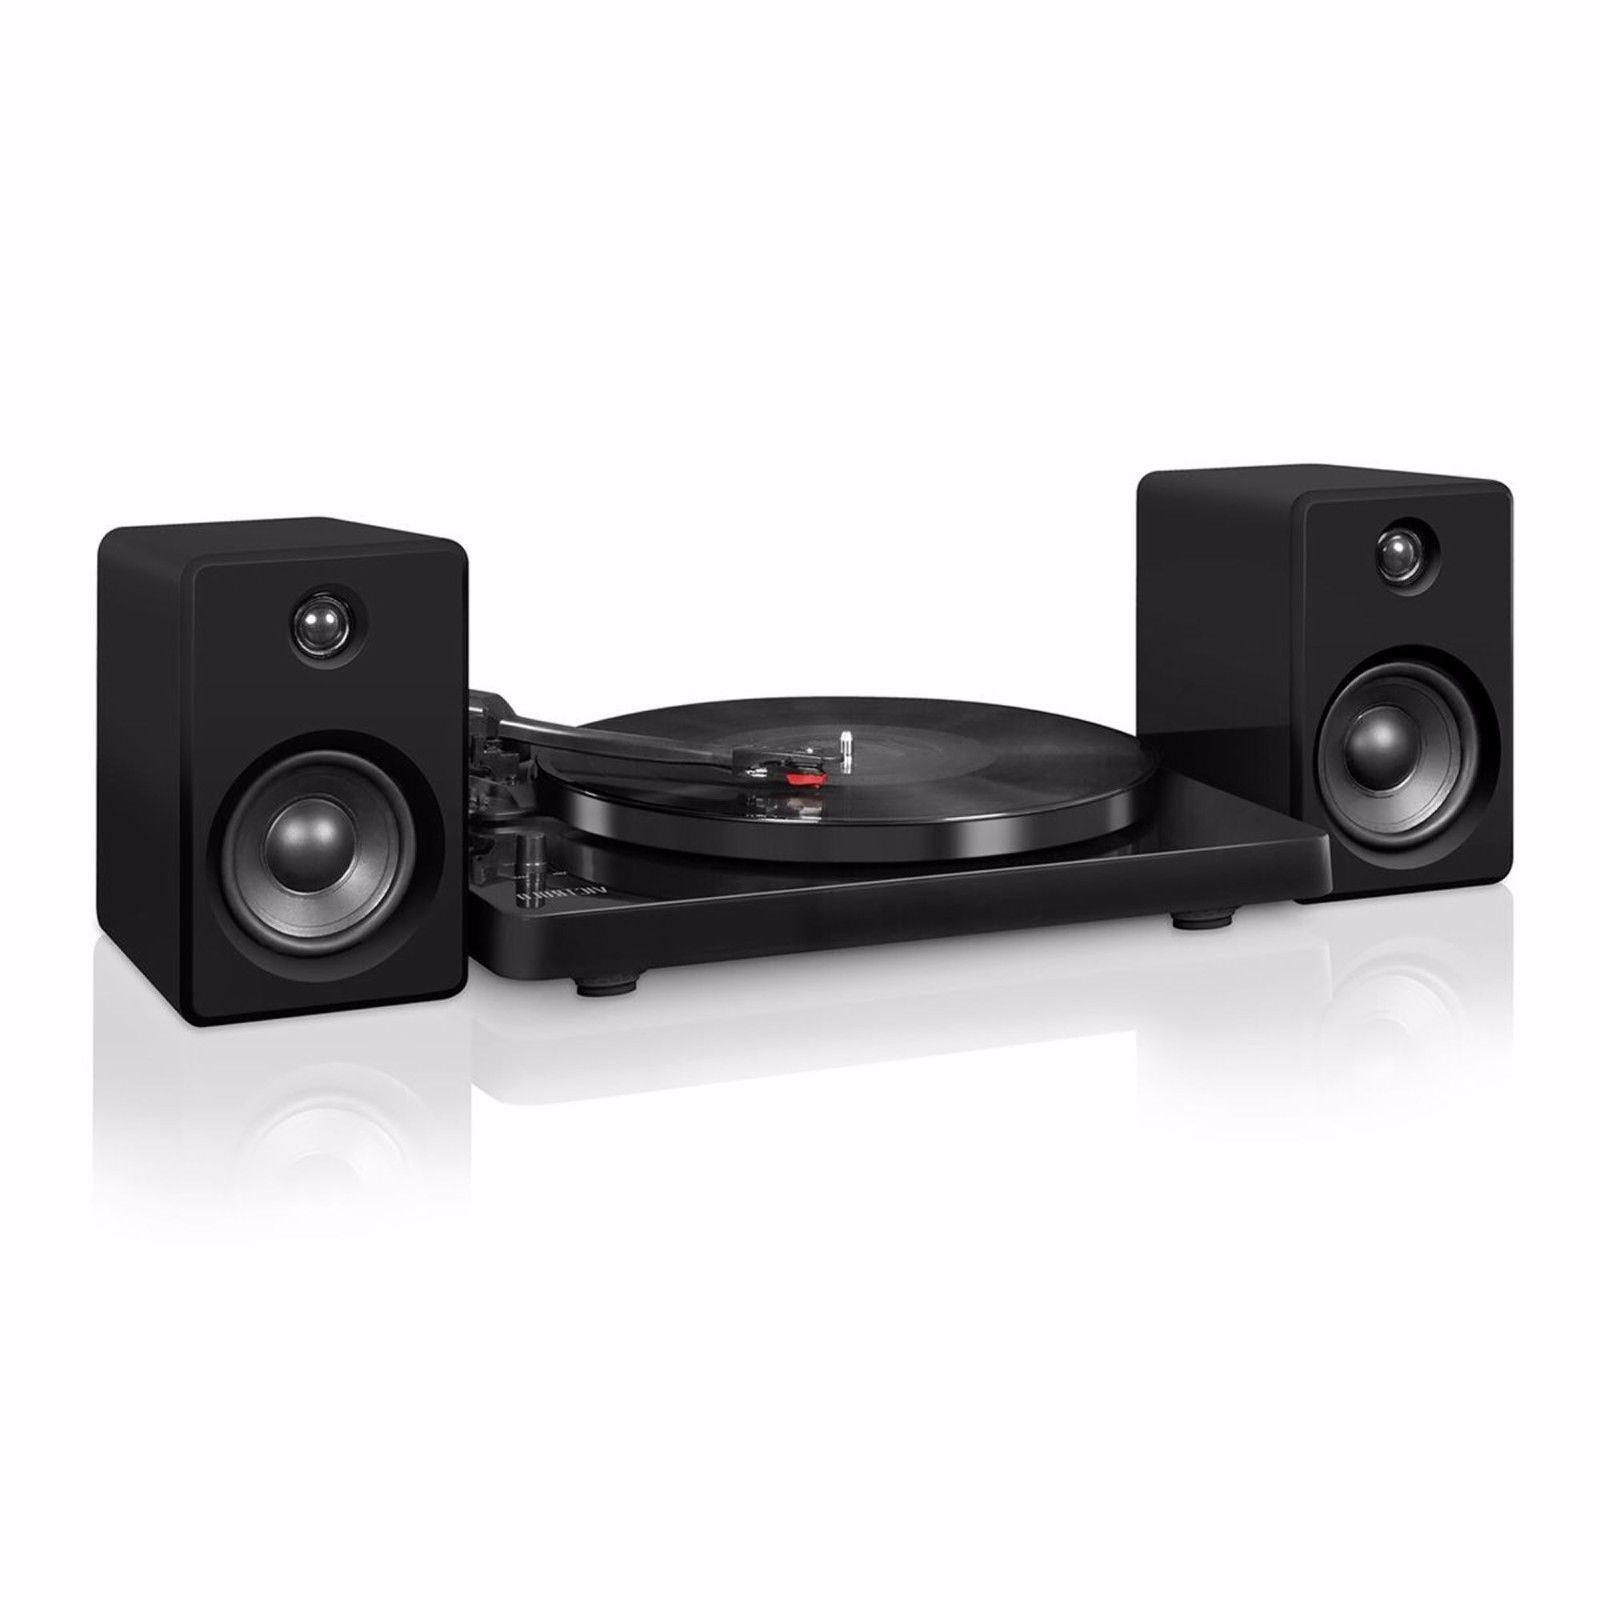 Stereo Audio System High-gloss Black